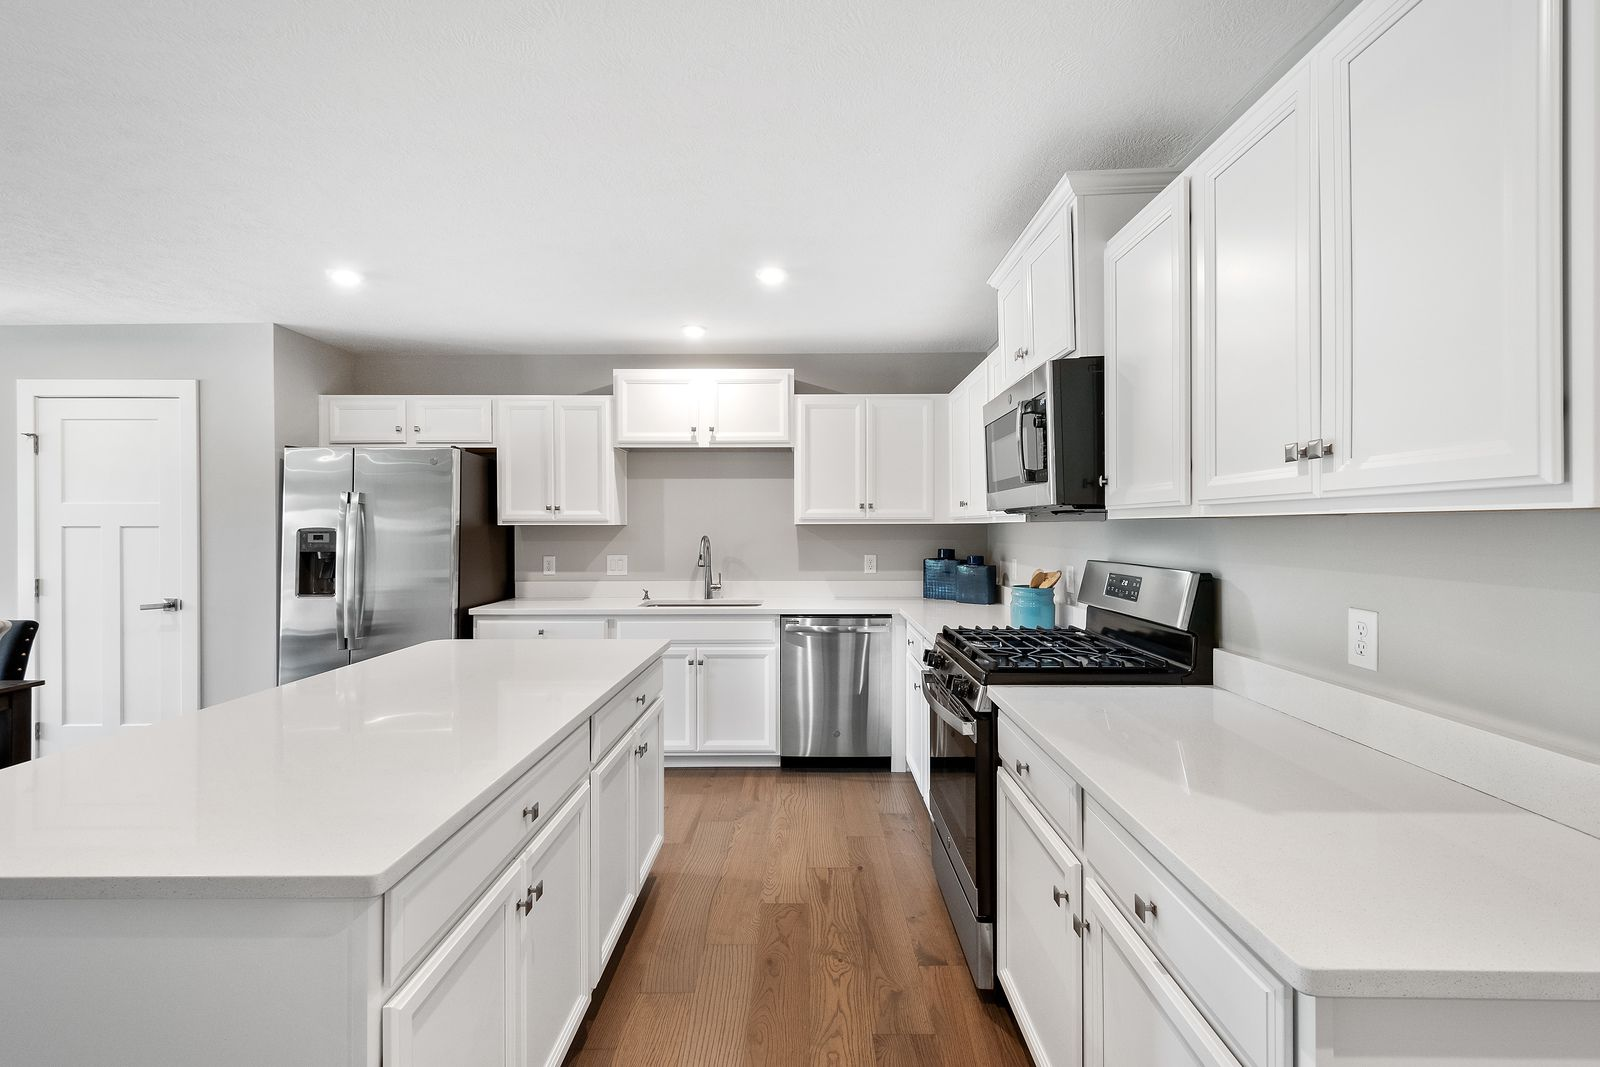 Kitchen featured in the Caicos By Ryan Homes in Pittsburgh, PA